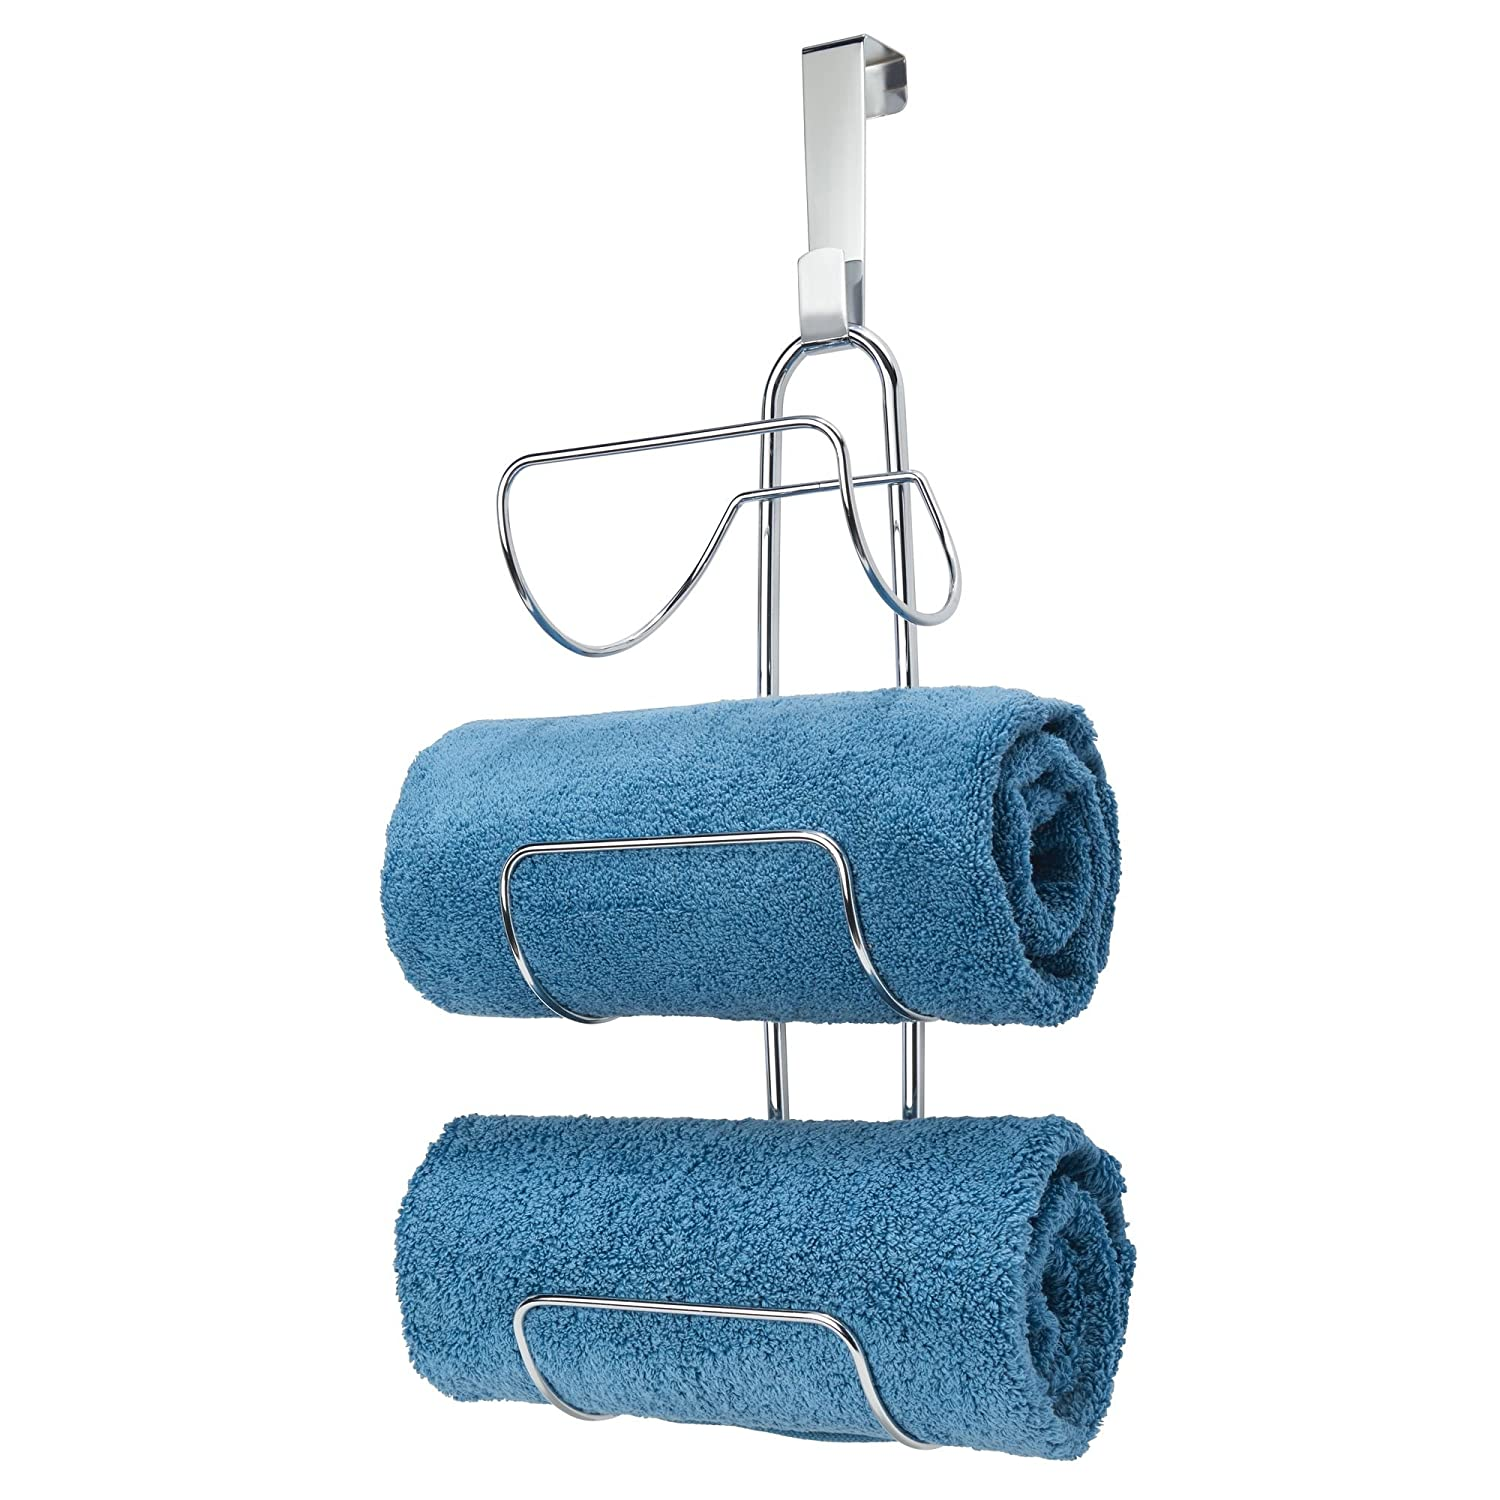 mDesign Wall Mounted Towel Storage Rack - Metal Towel Hanging Rail - Towel Hanger for The Bathroom - Silver MetroDecor